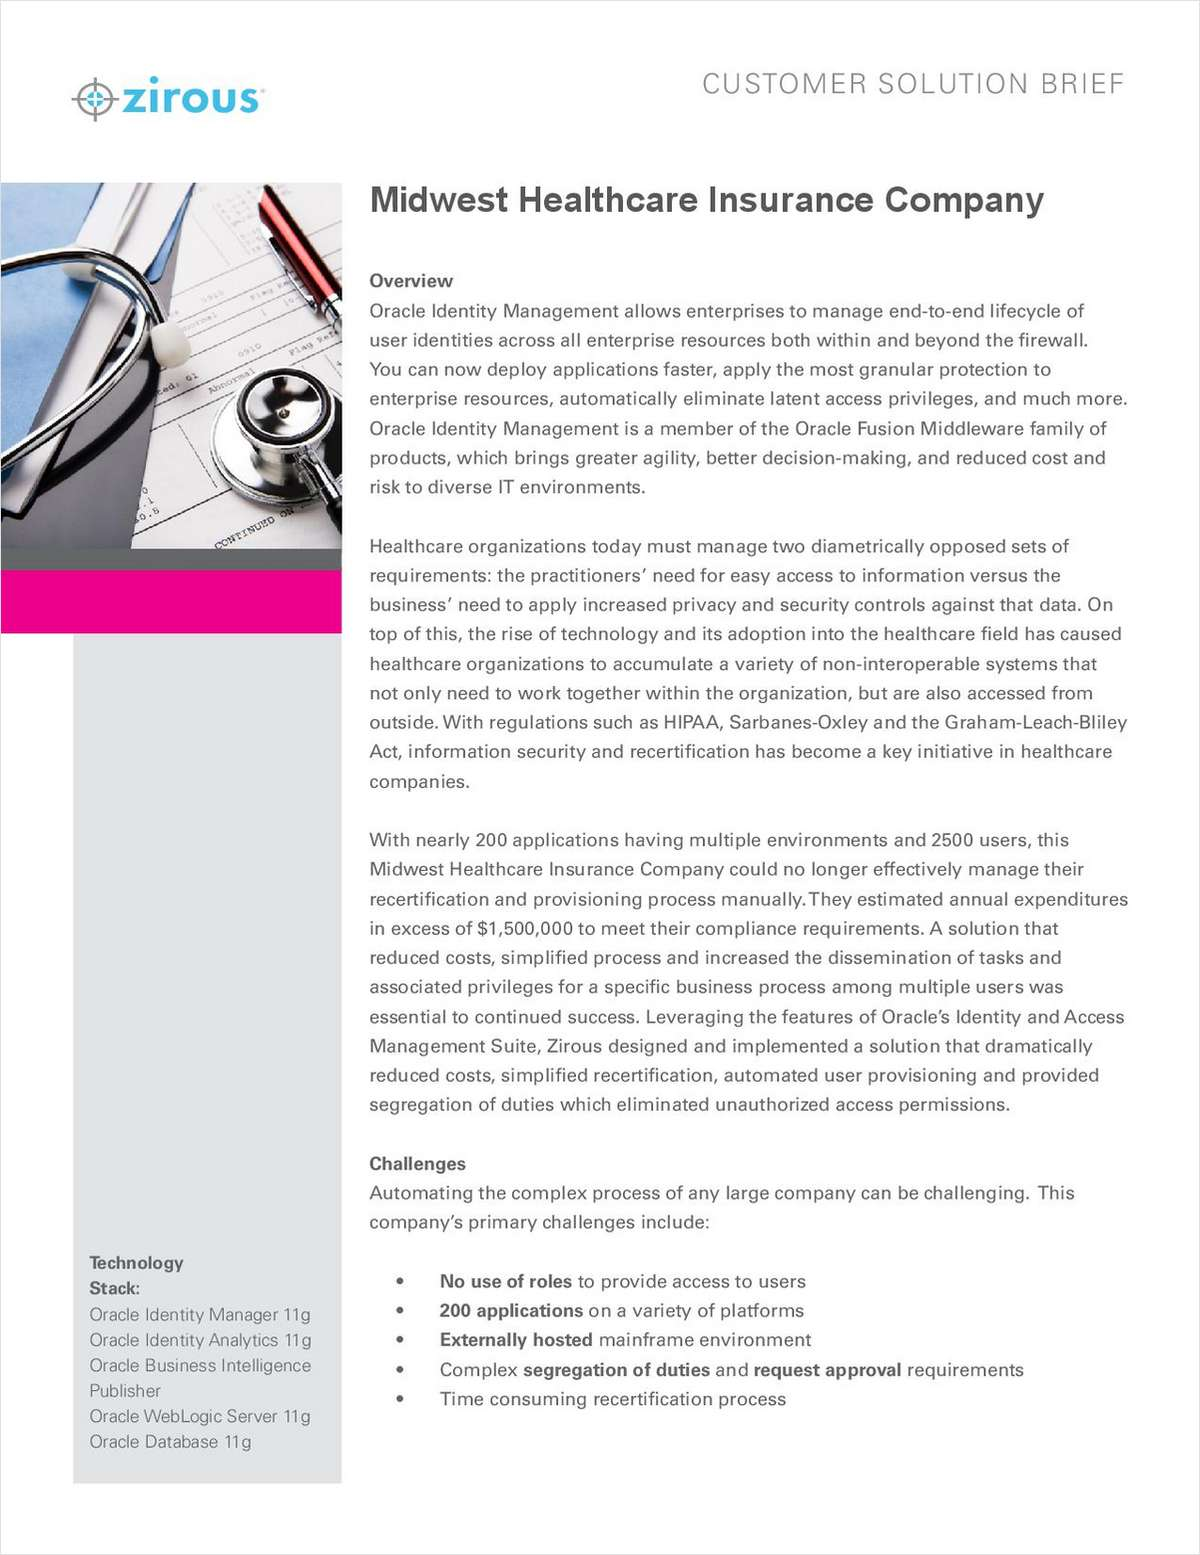 Using Oracle Identity Management: Midwest Healthcare Insurance